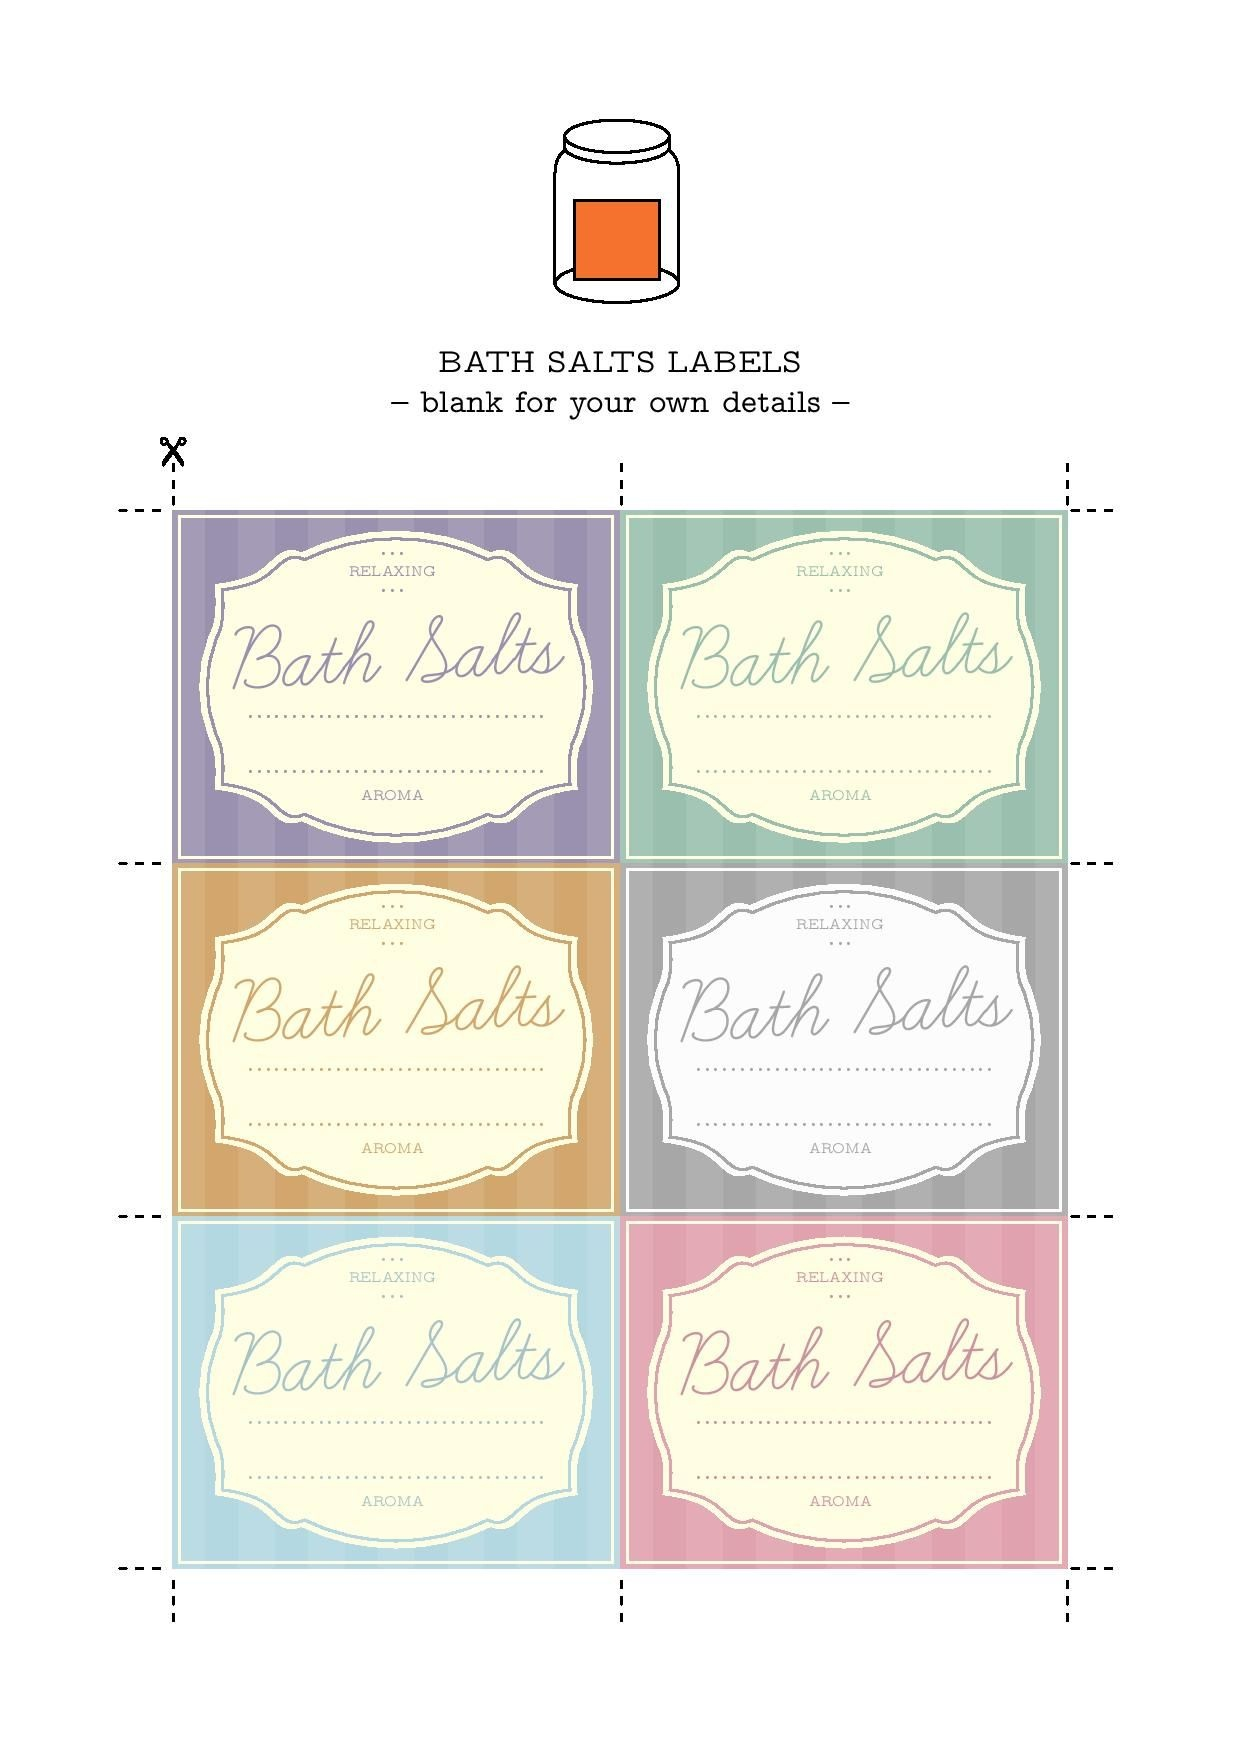 Printable Labels To Help You Organise Your Bath Salts | Essential - Spa In A Jar Free Printable Labels